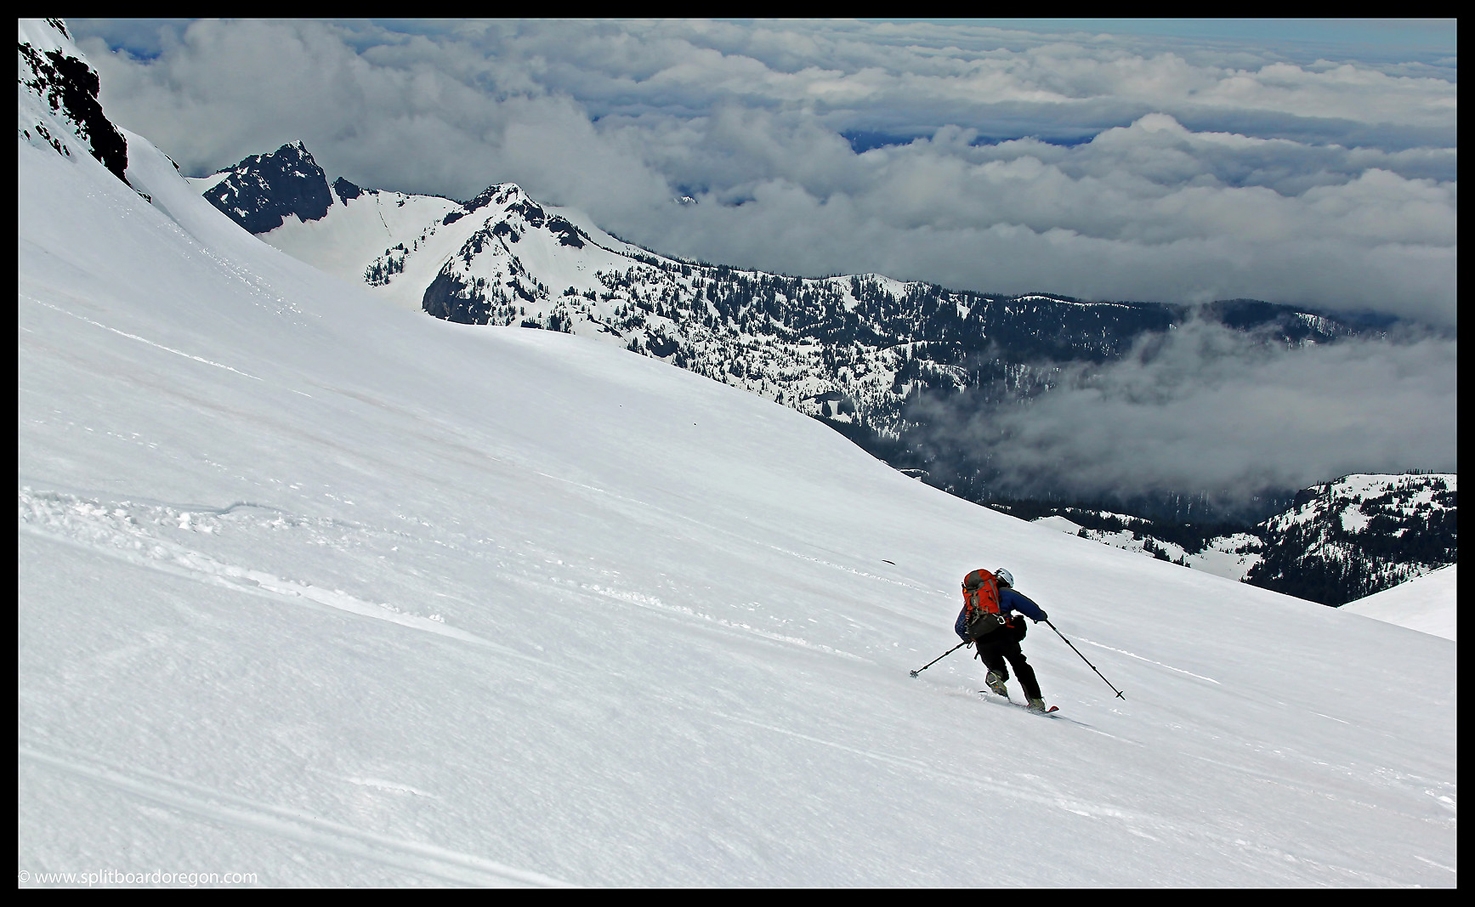 Skiing on the Renfrew Glacier